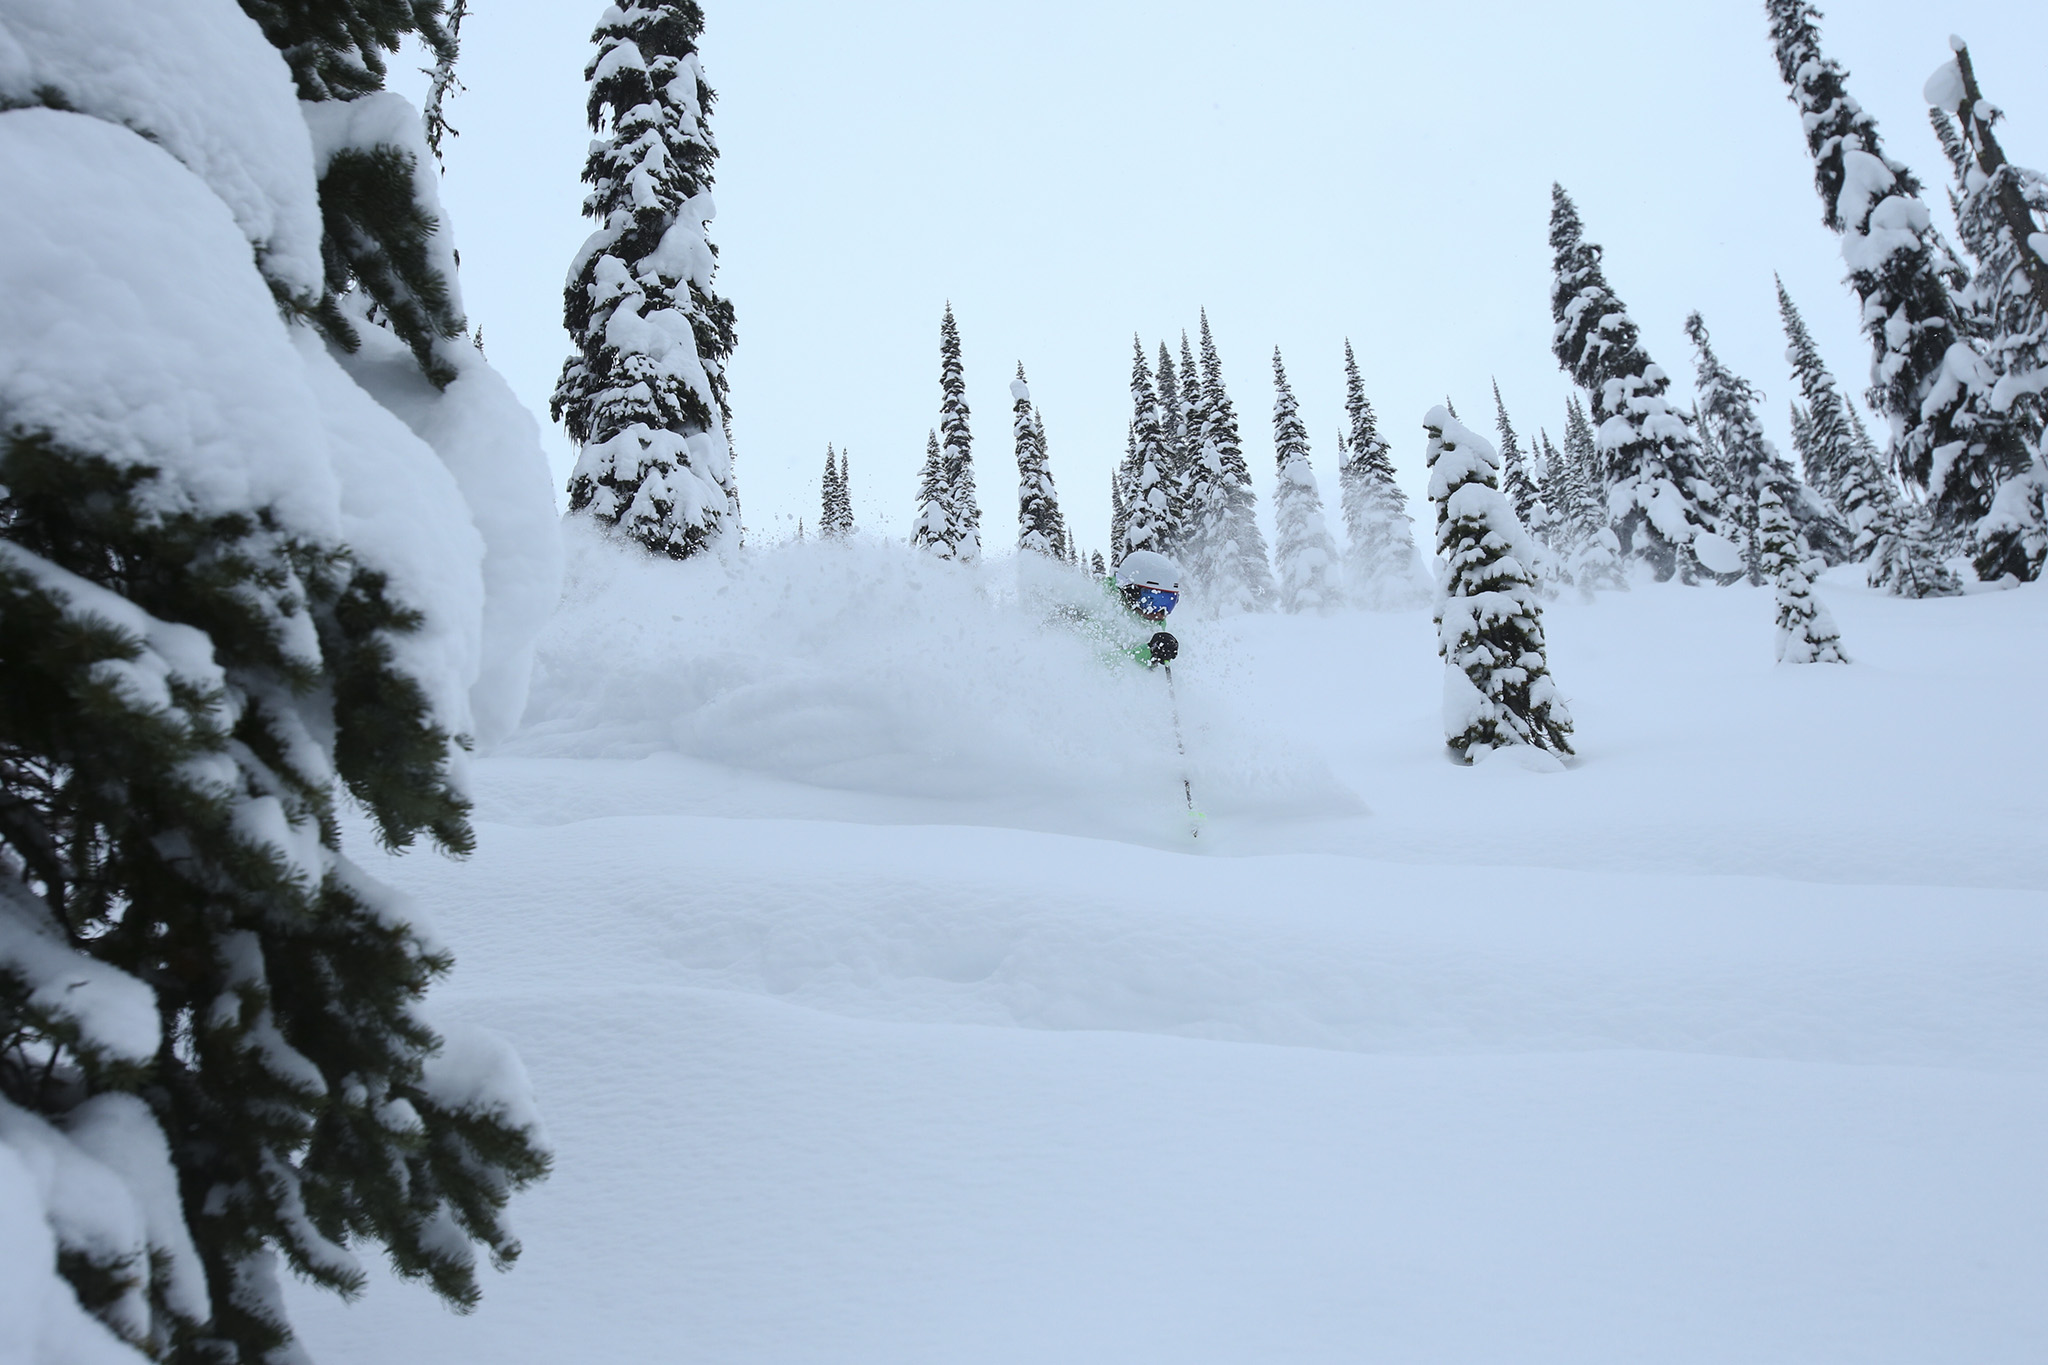 Christina Lusti, Sunsrise Lodge, Esplanade Range, BC, Canada photo:Adam Clark